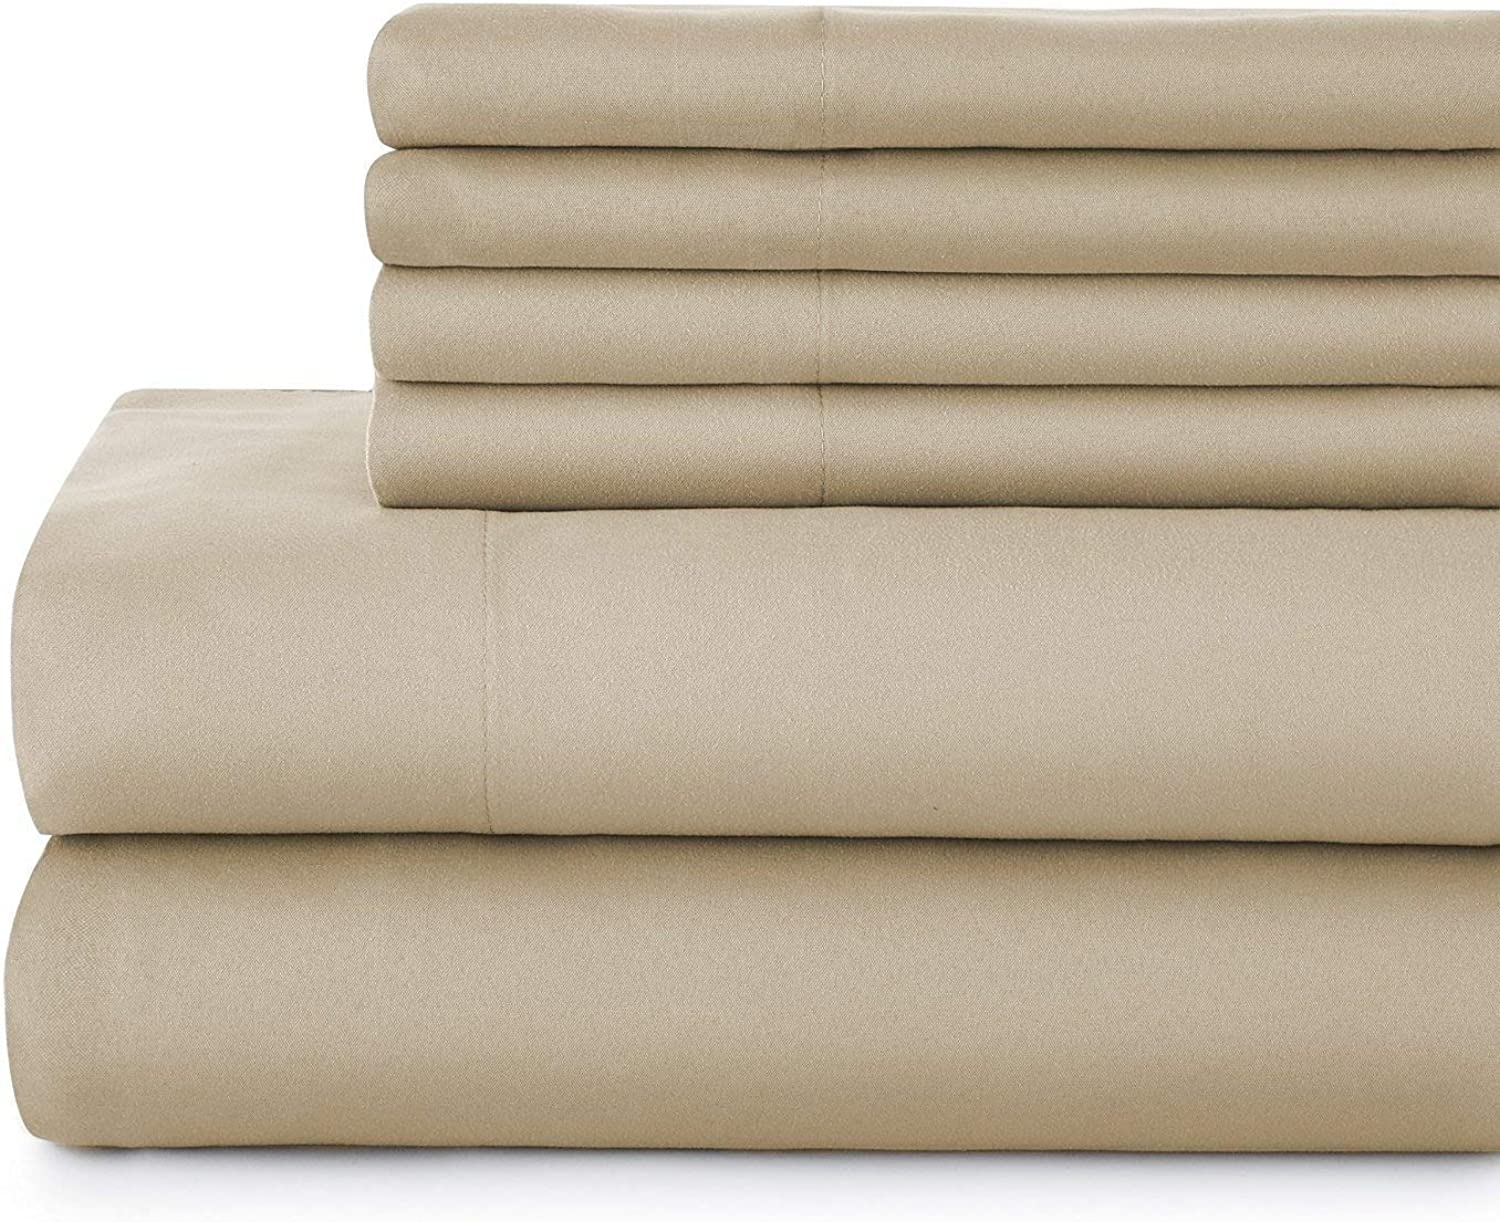 4-Piece Hotel Luxury Bed Sheets - Premium Collection 1800 Series Ultra-Soft Brushed Microfiber Sheet Set - Hypoallergenic - Wrinkle Resistant - Deep Pocket fits Upto 16  Twin XL Taupe